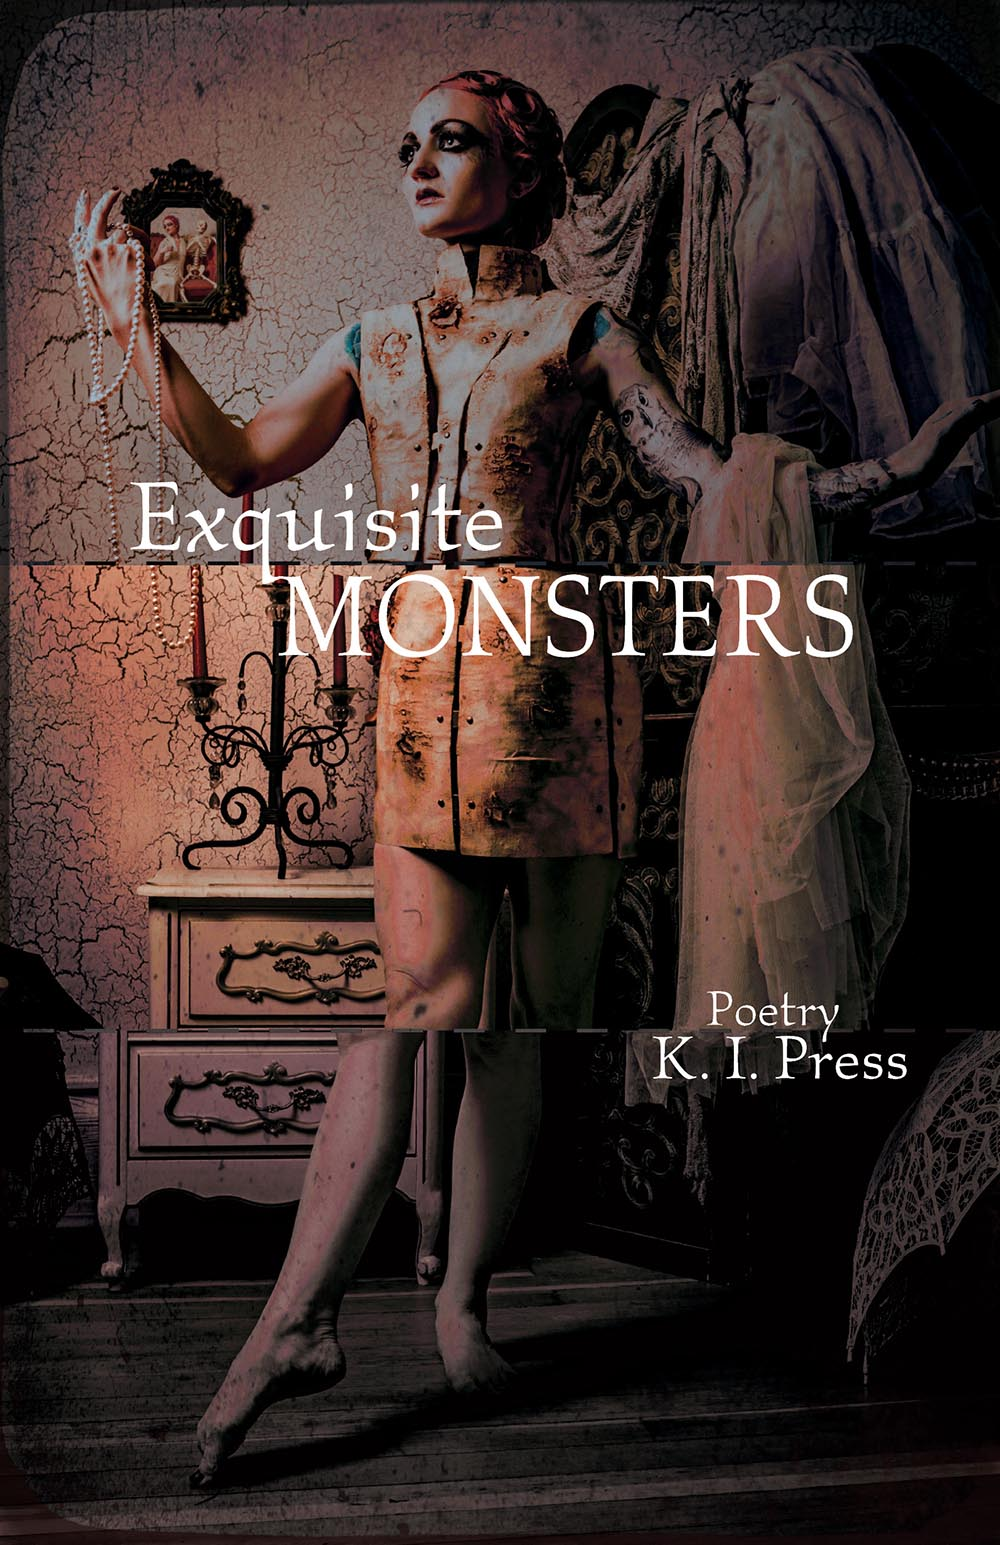 Exquisite Monsters by K.I. Press